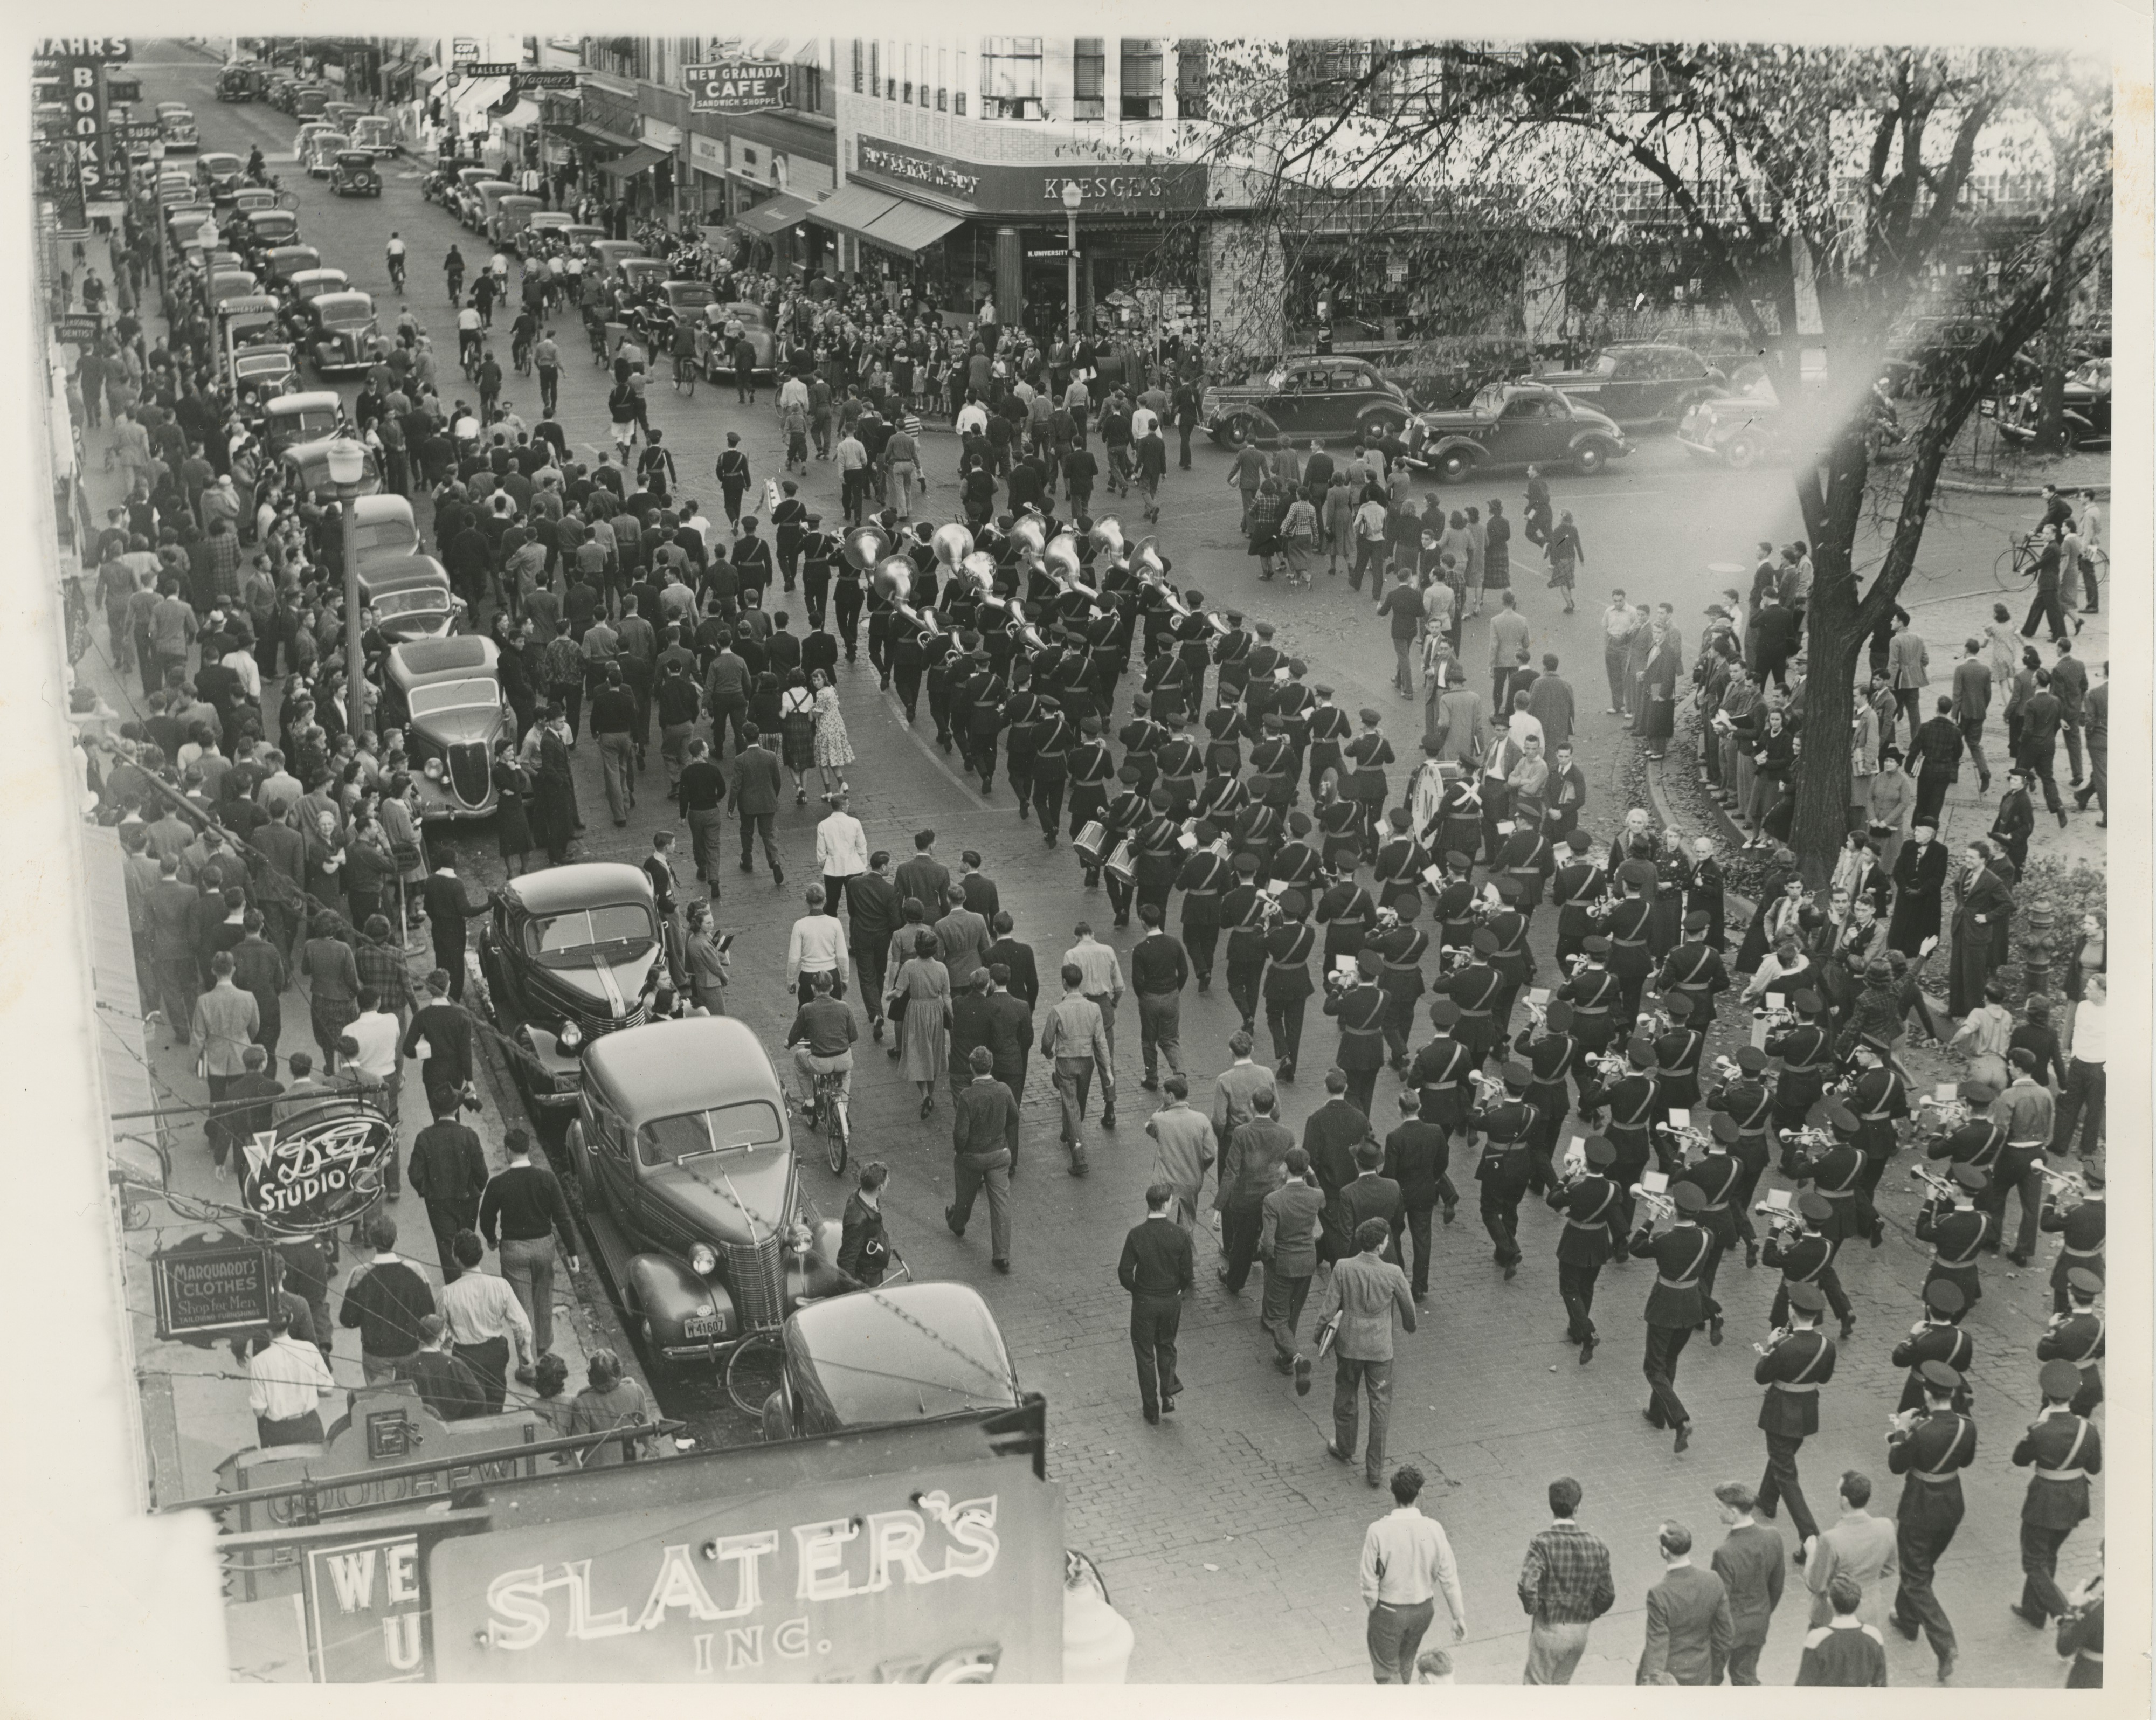 University of Michigan Marching Band, State St and N University, October 1938 image